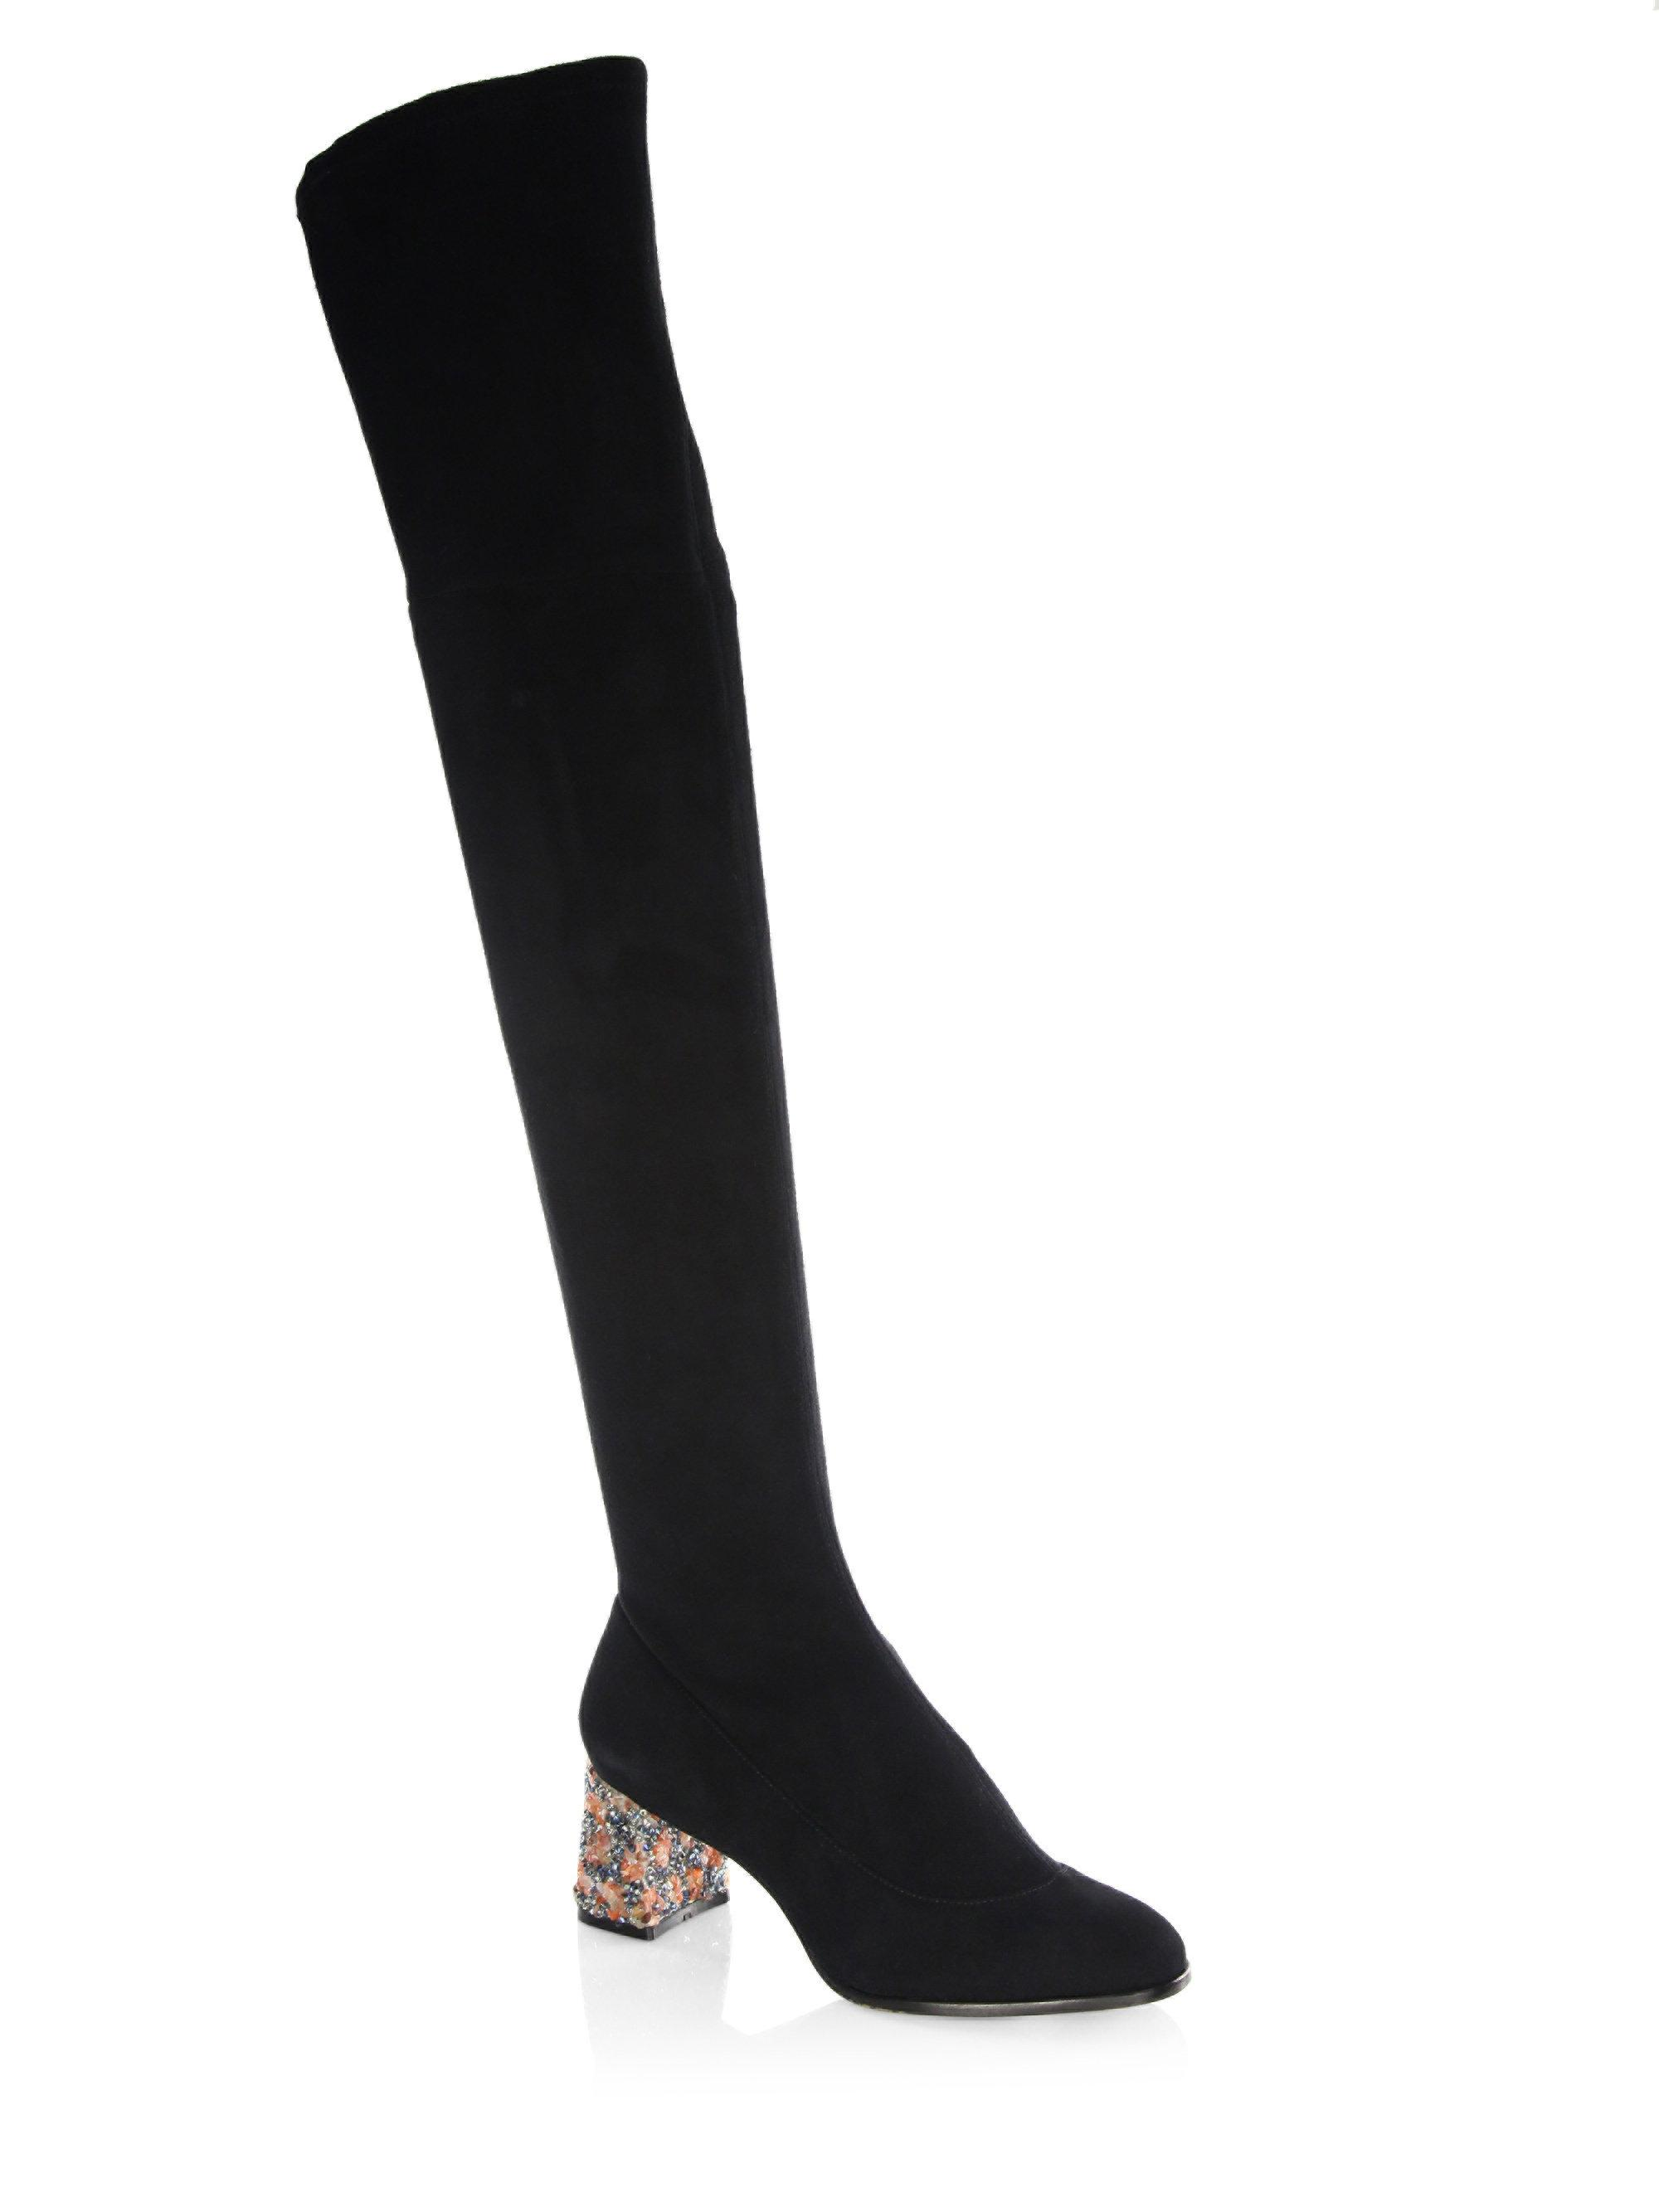 82b6f64a21b Lyst - Sophia Webster Suranne Over-the-knee Stretch Suede Boots in Black